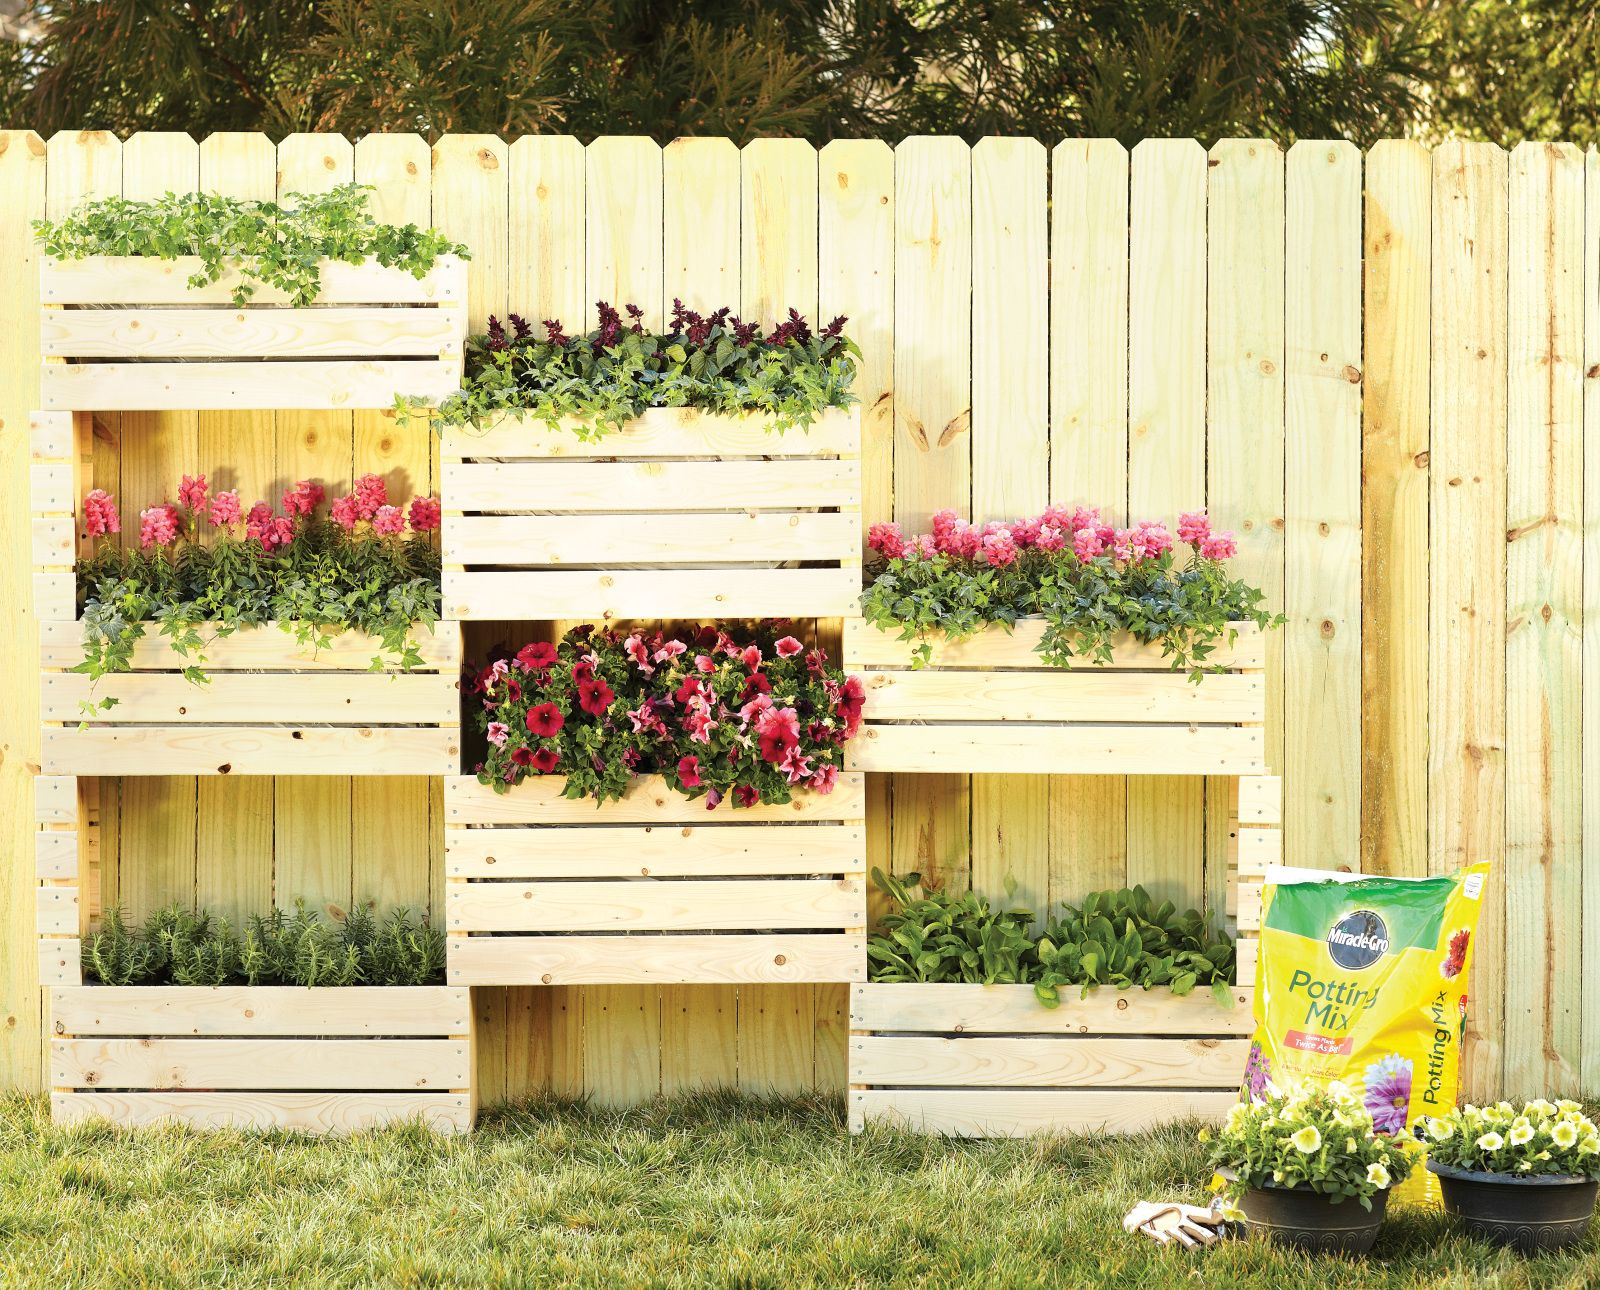 Build a Wall of Flowers for Your Backyard | Backyard, Flower and Walls